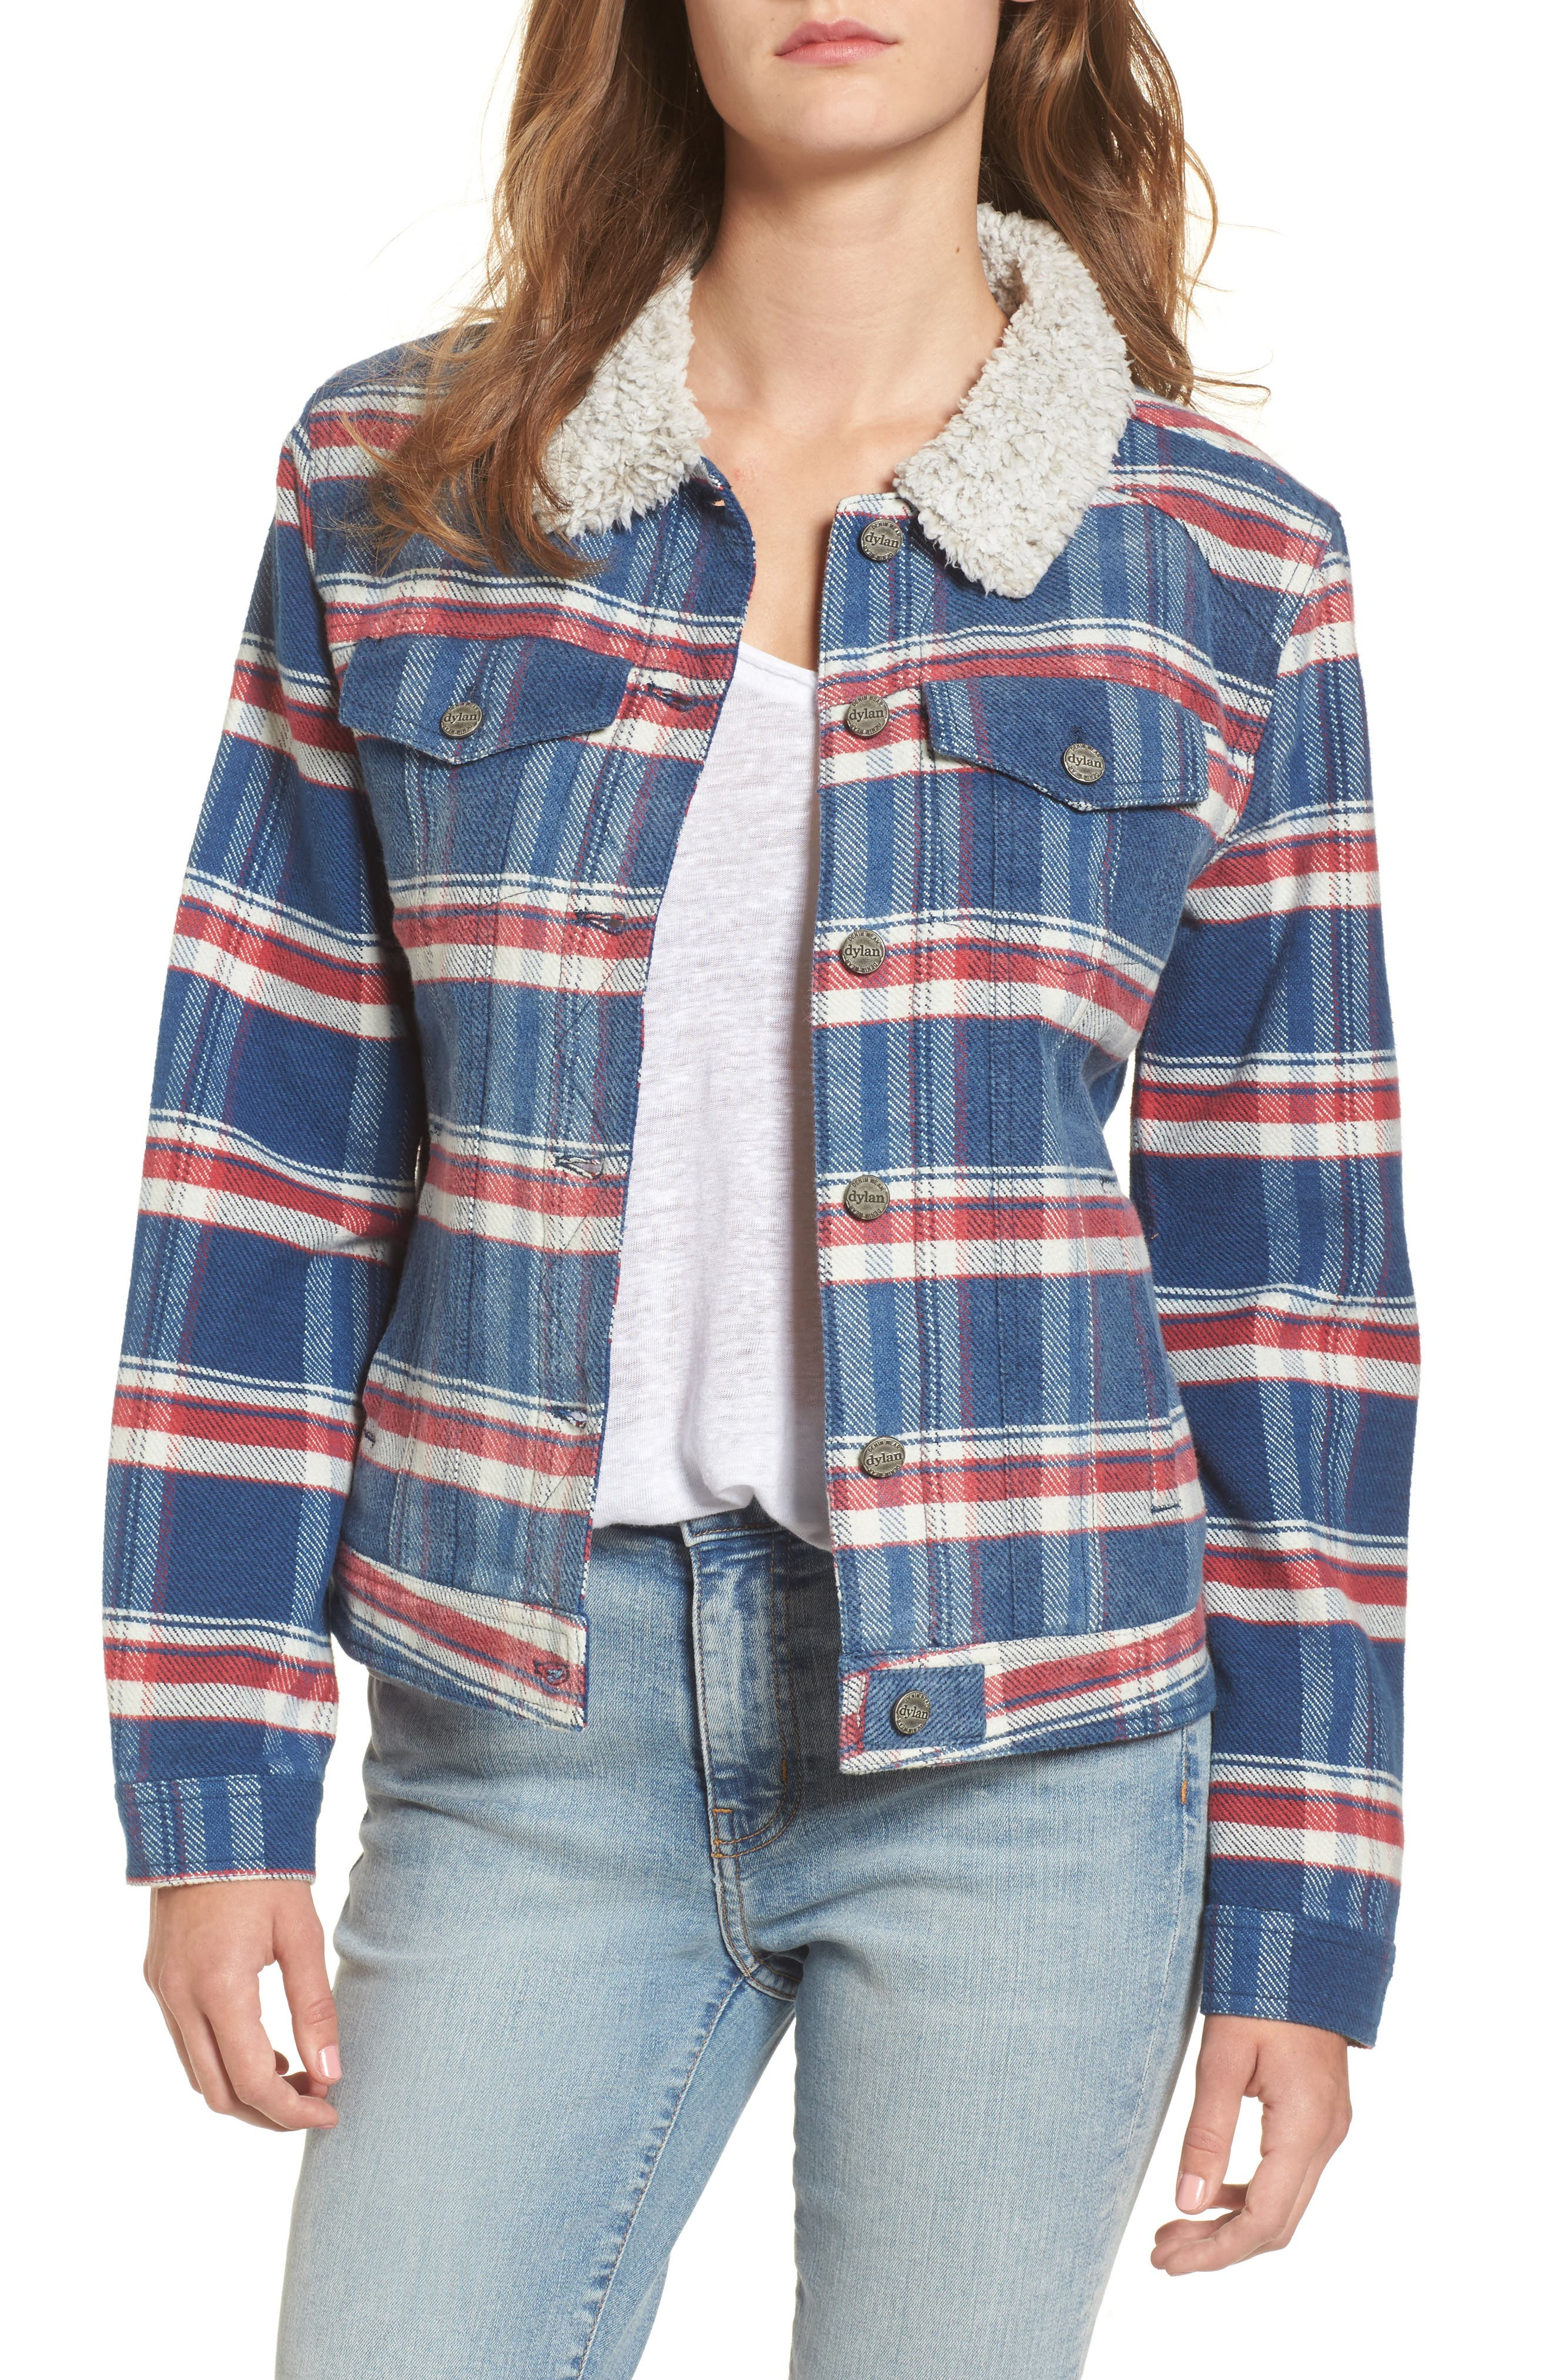 Main Image - Dylan Ella Plaid Denim Jacket with Faux Shearling Collar